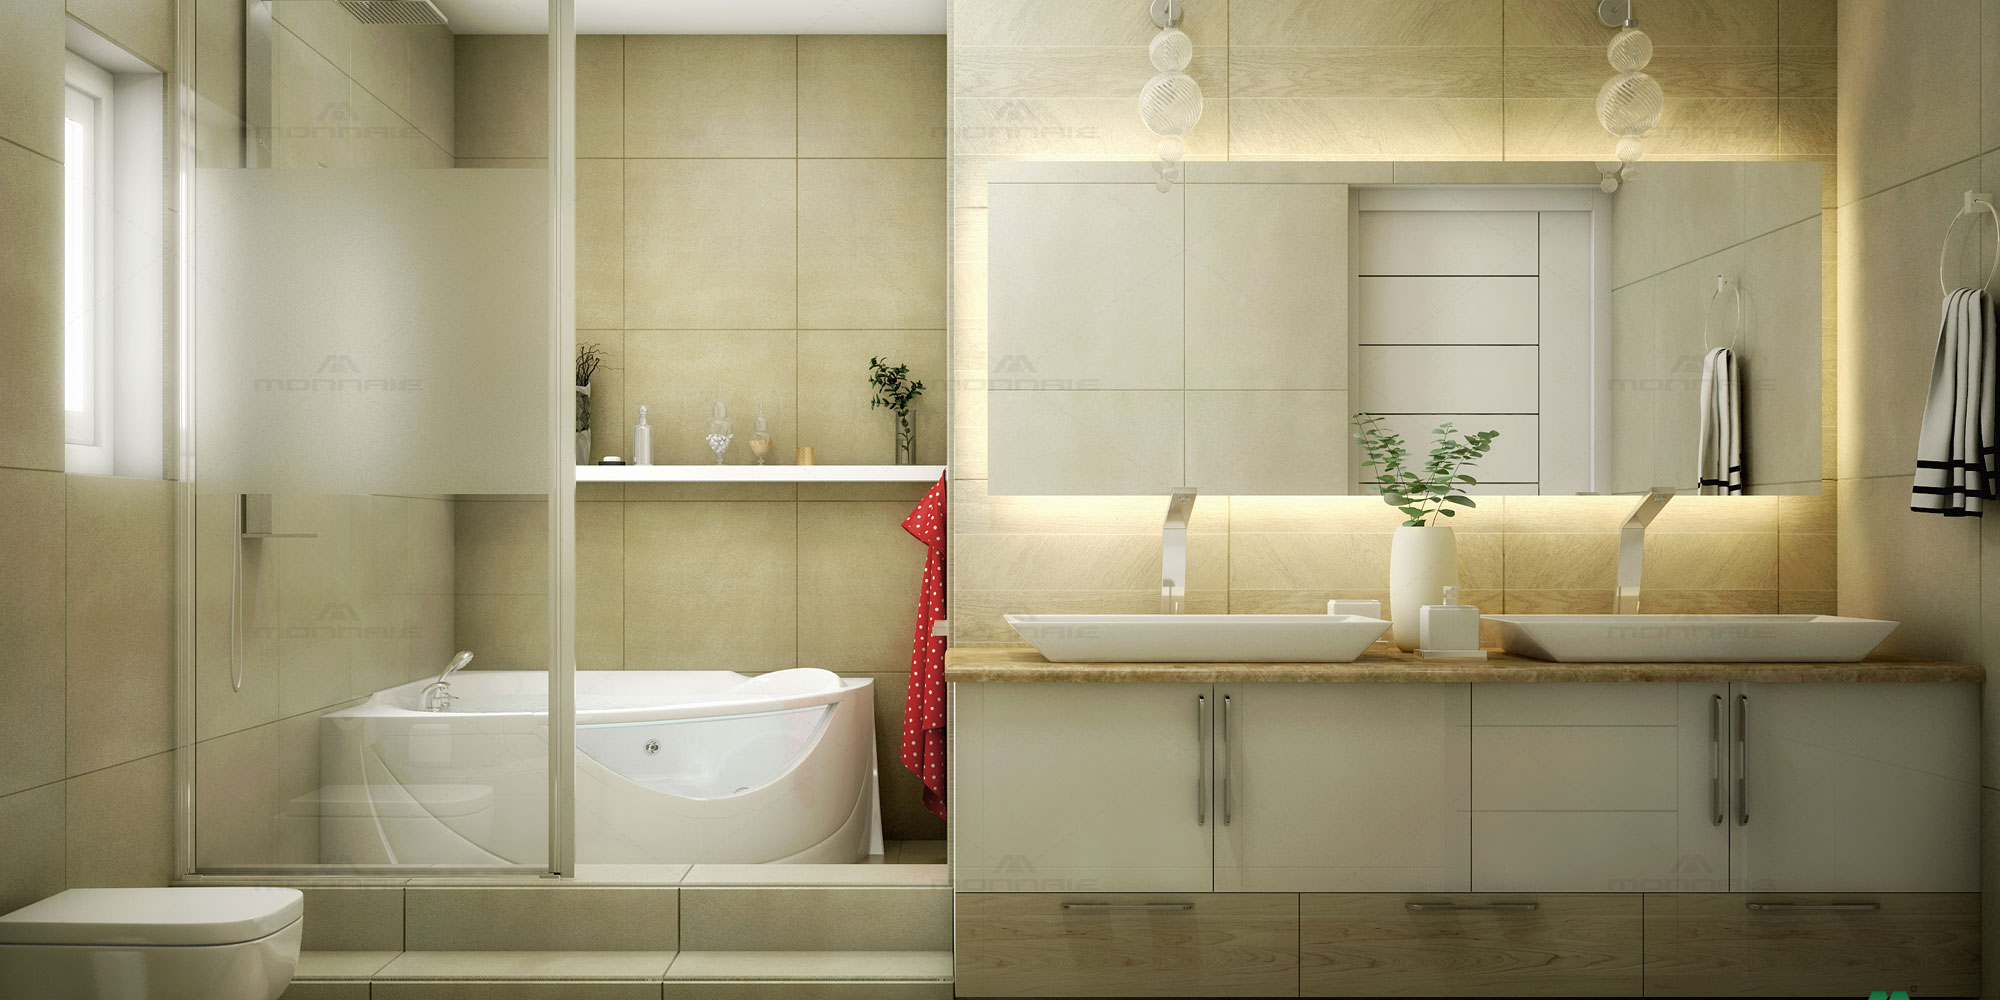 Bathroom interiors in Kottayam